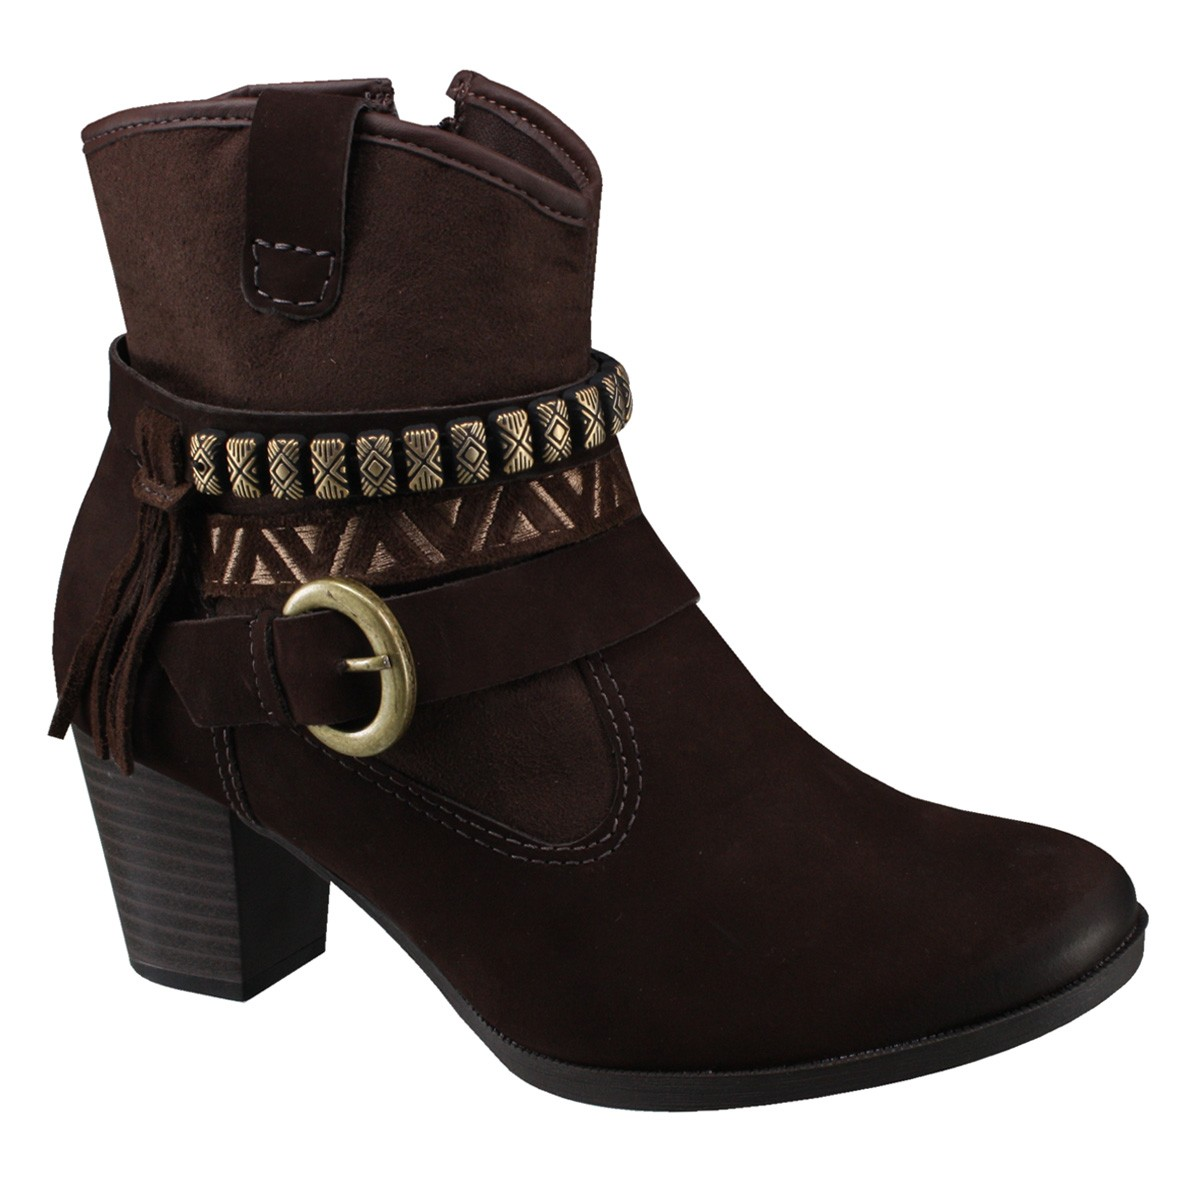 c4dc5805b7 Bota Dakota Ankle Boot B7961 - Chocolate (Indianopolis Nitra Camu ...